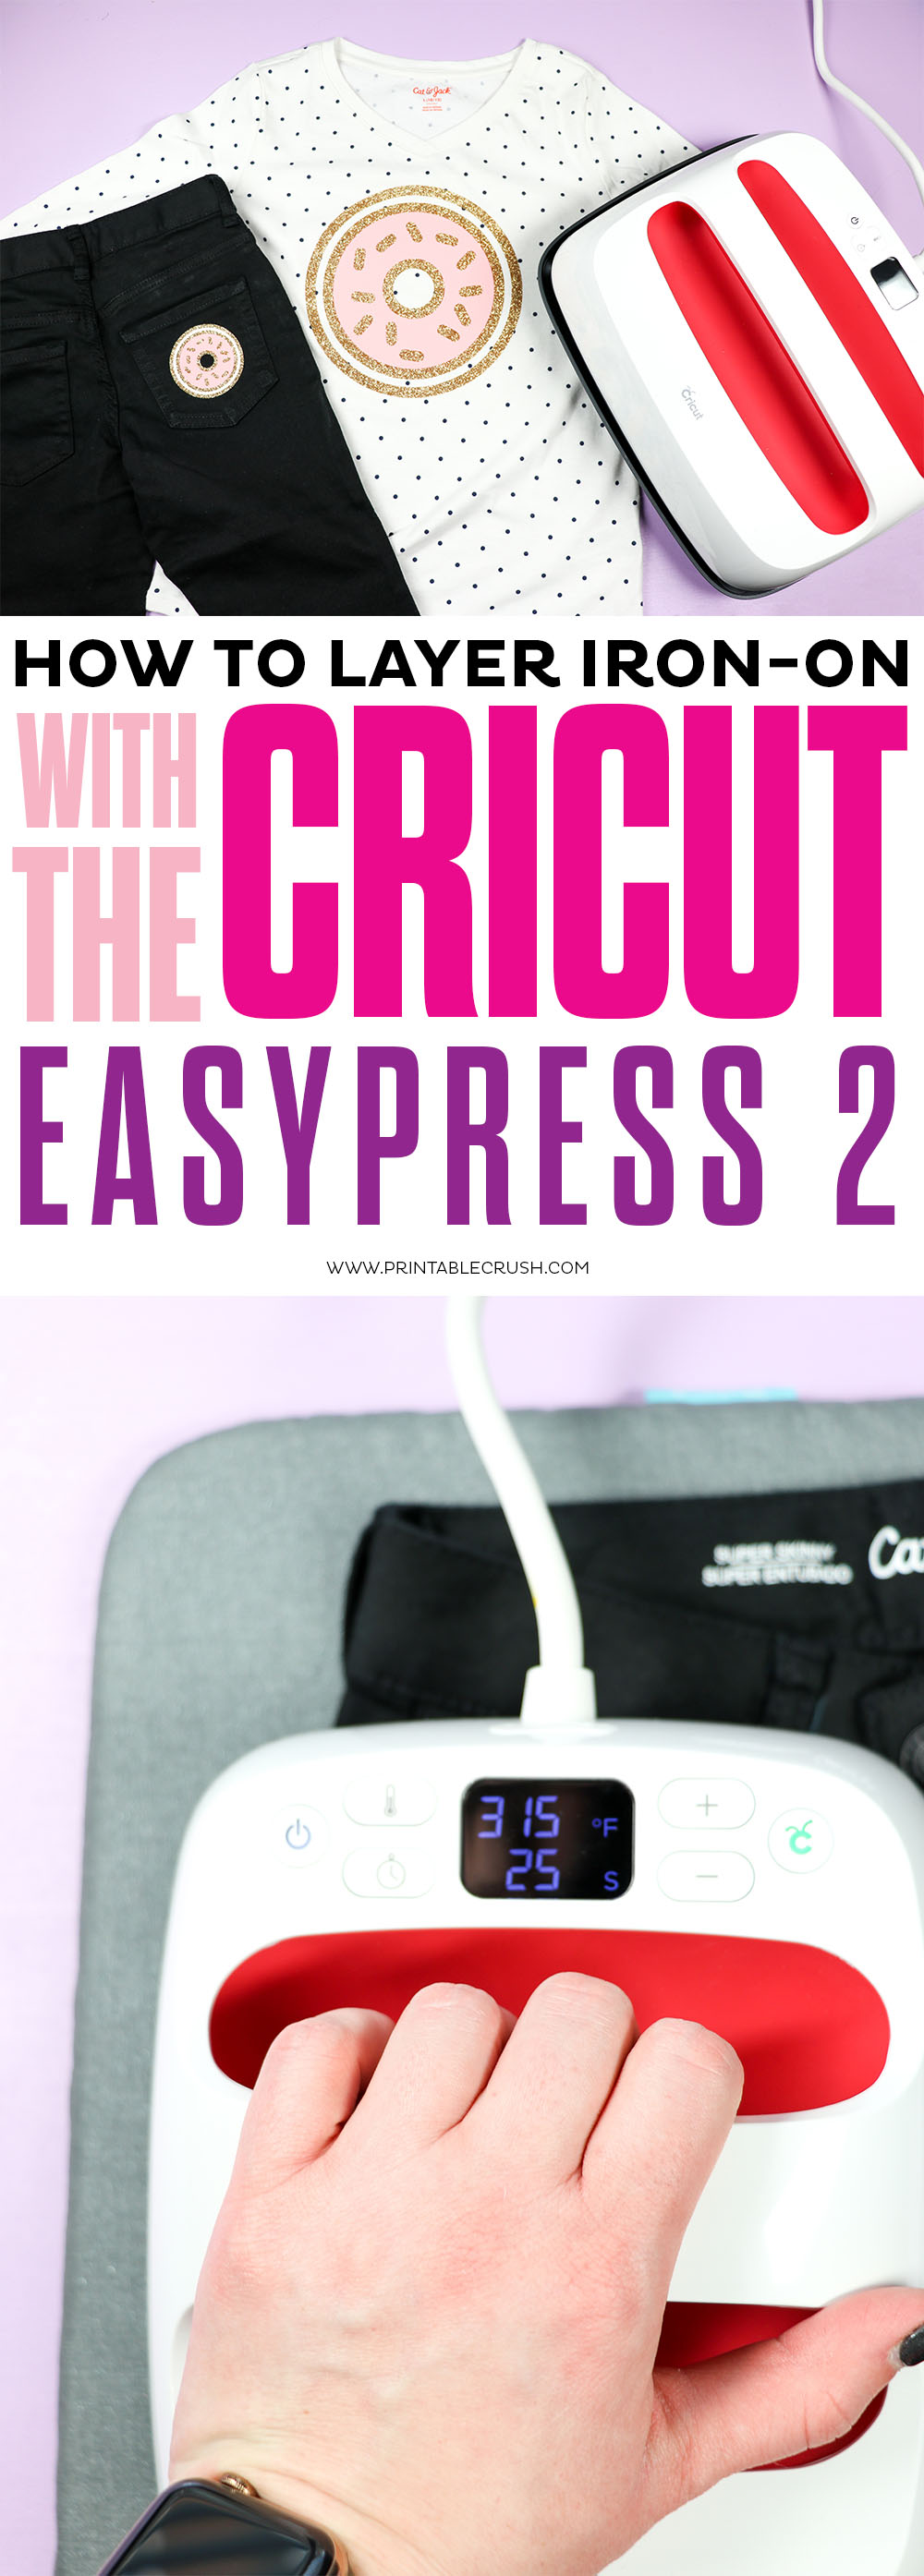 How to layer iron-on with the Cricut EasyPress 2 Don't be intimidated by layering iron-on --it is SO easy!